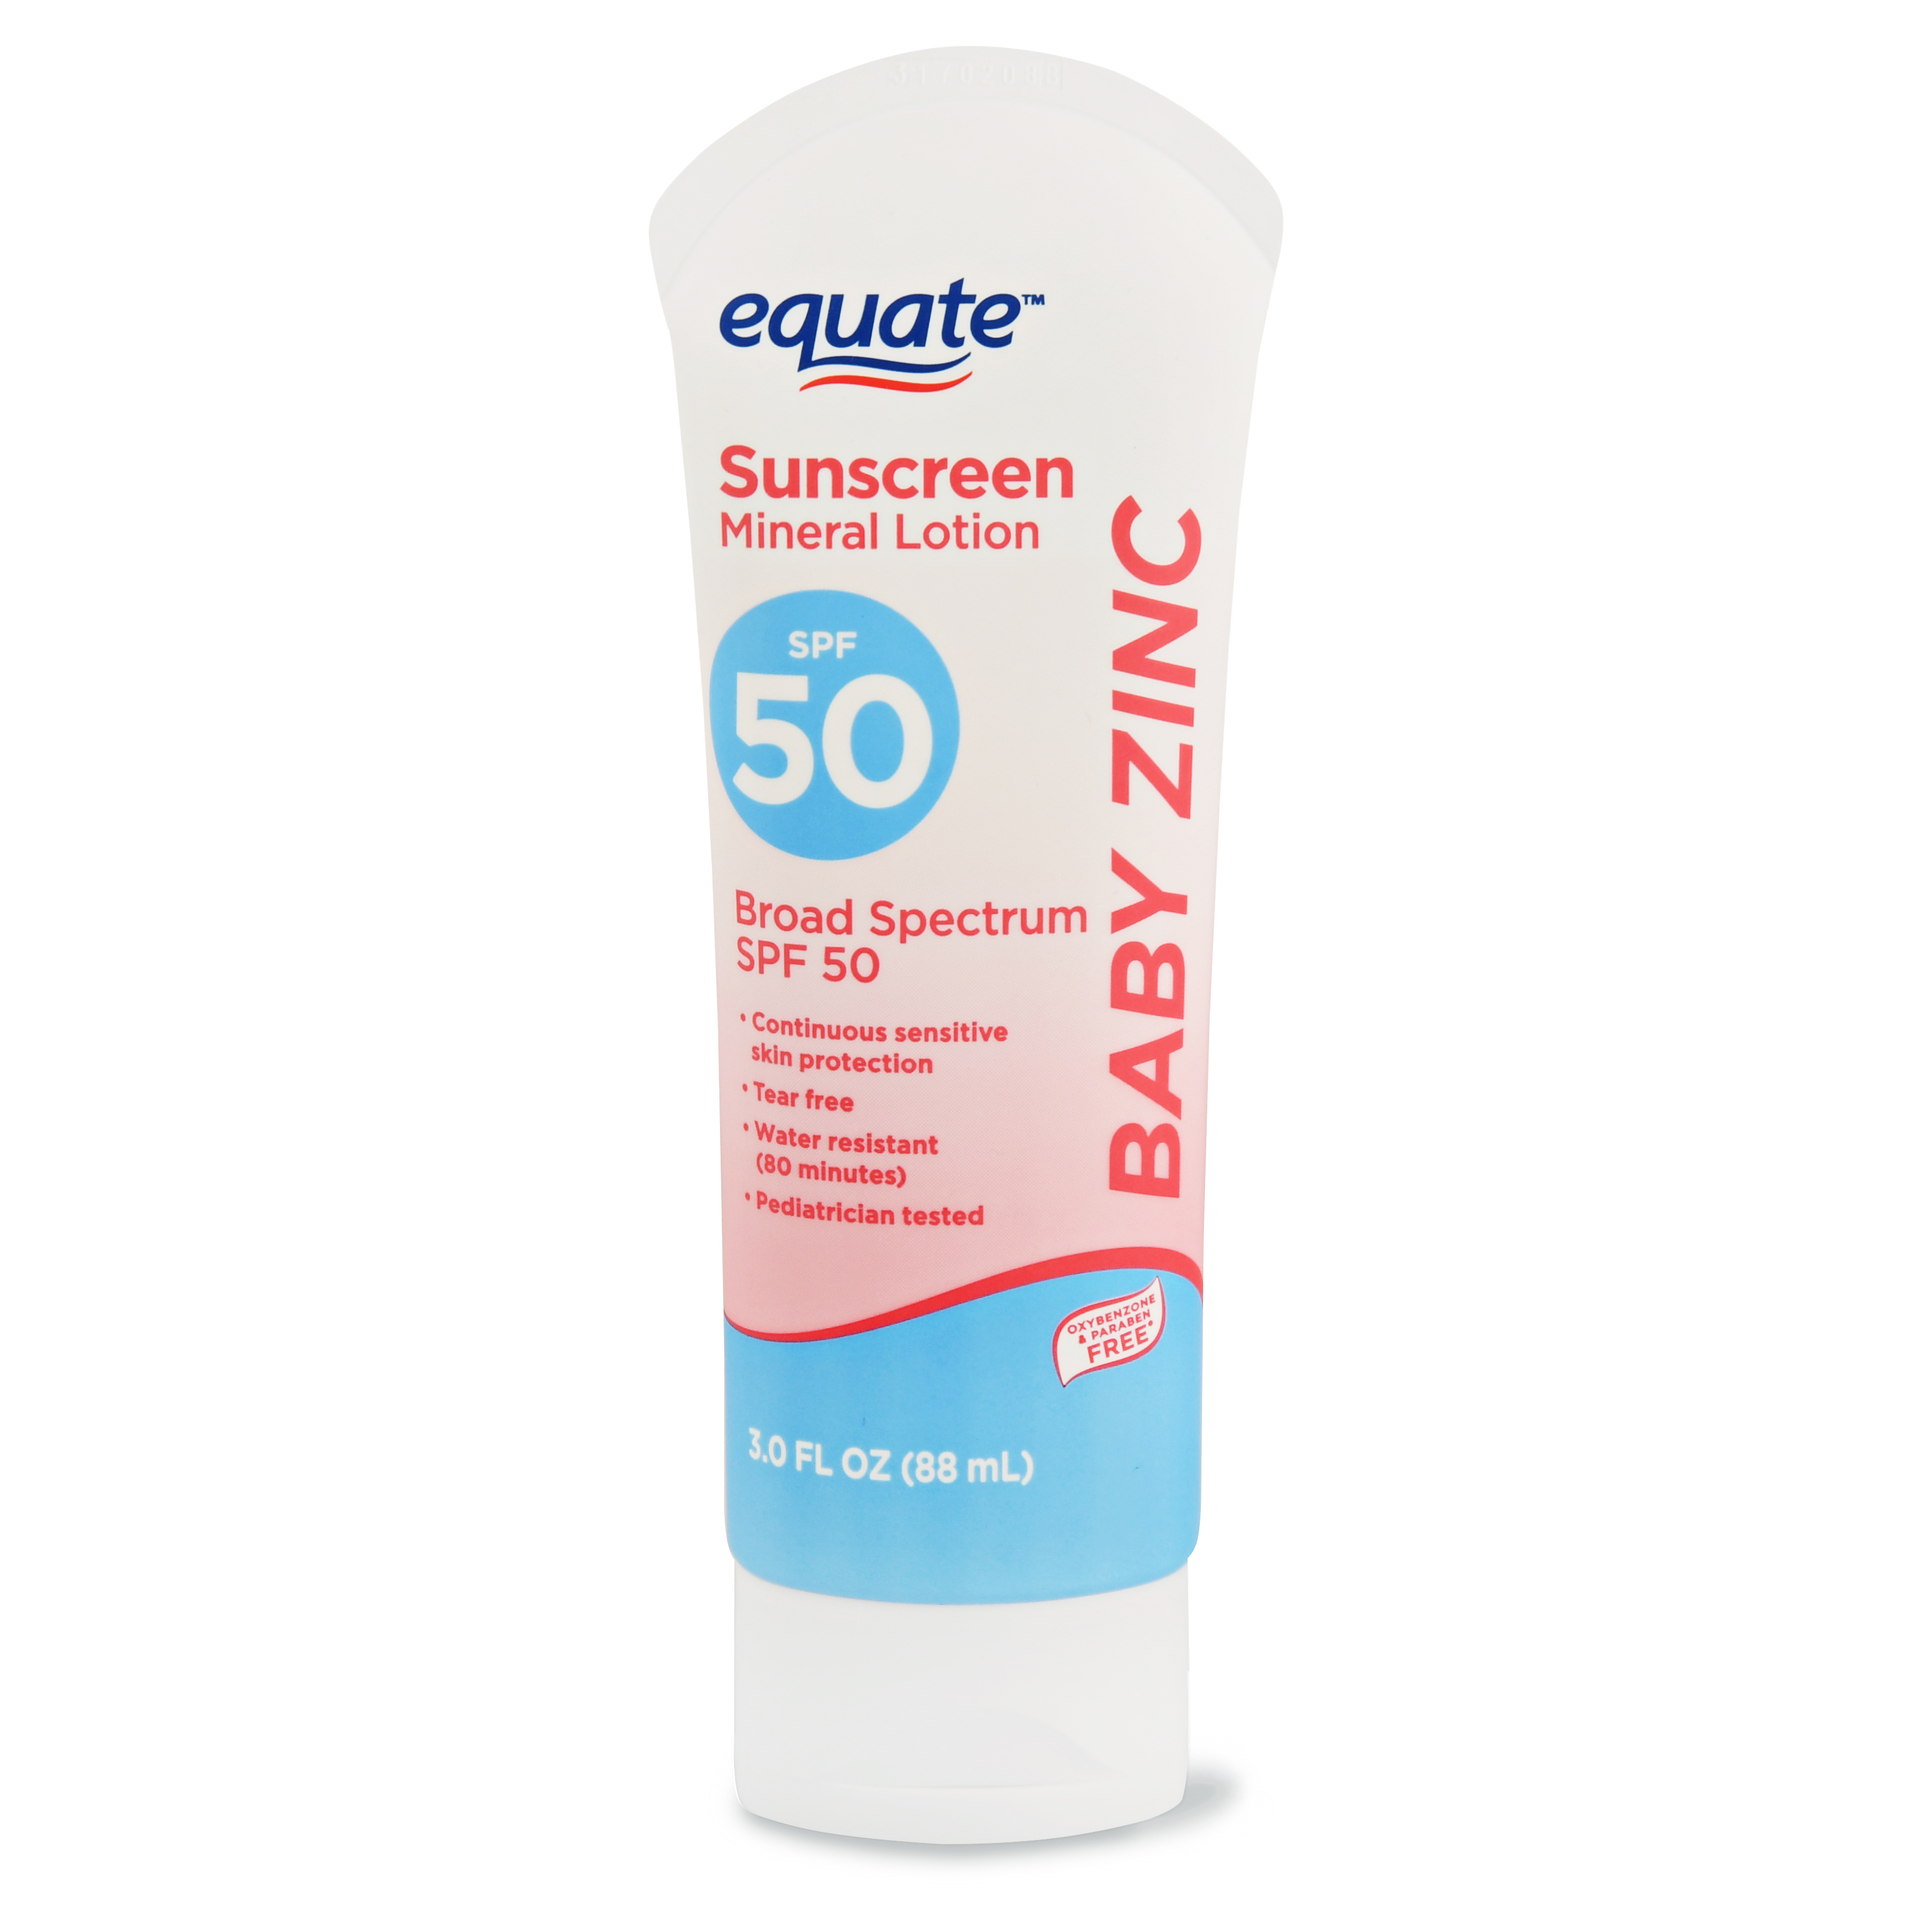 (2 pack) Equate Baby Zinc Sunscreen Mineral Lotion, SPF 50, 3 fl oz